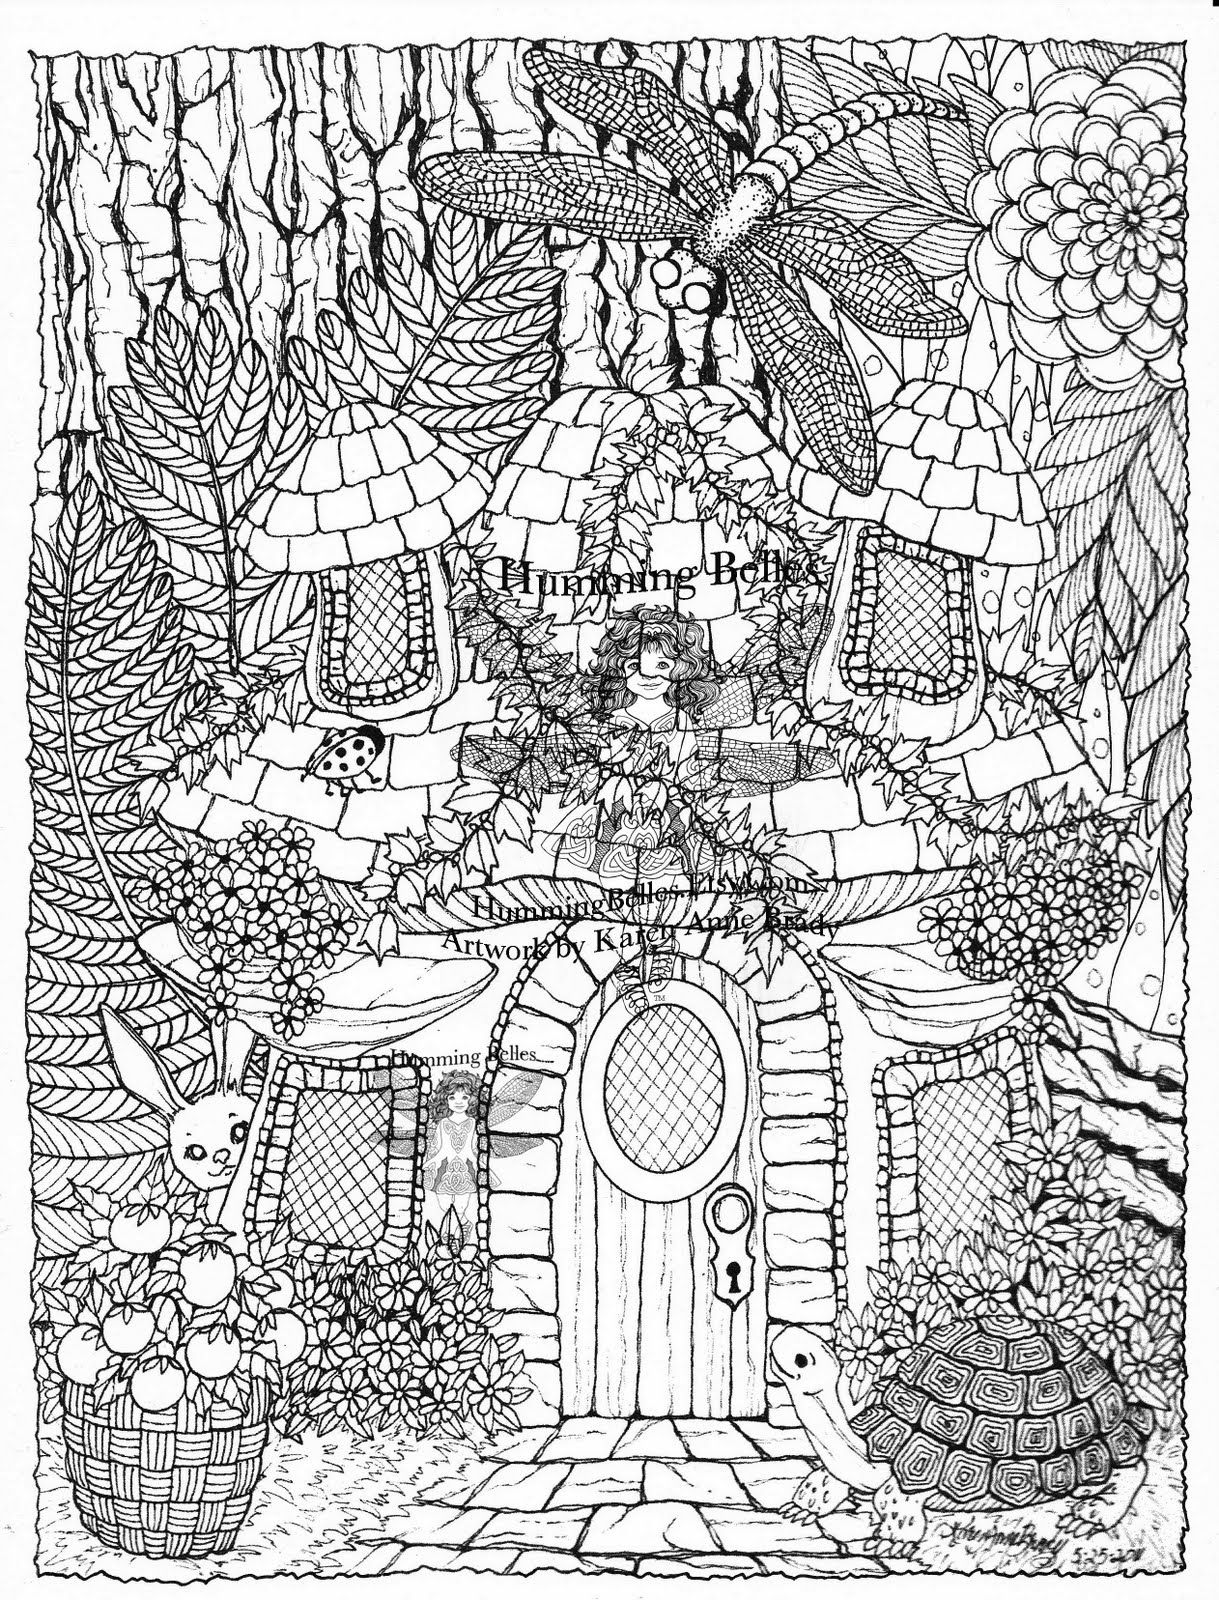 Detailed Coloring Pages For Adults IrelandBrady